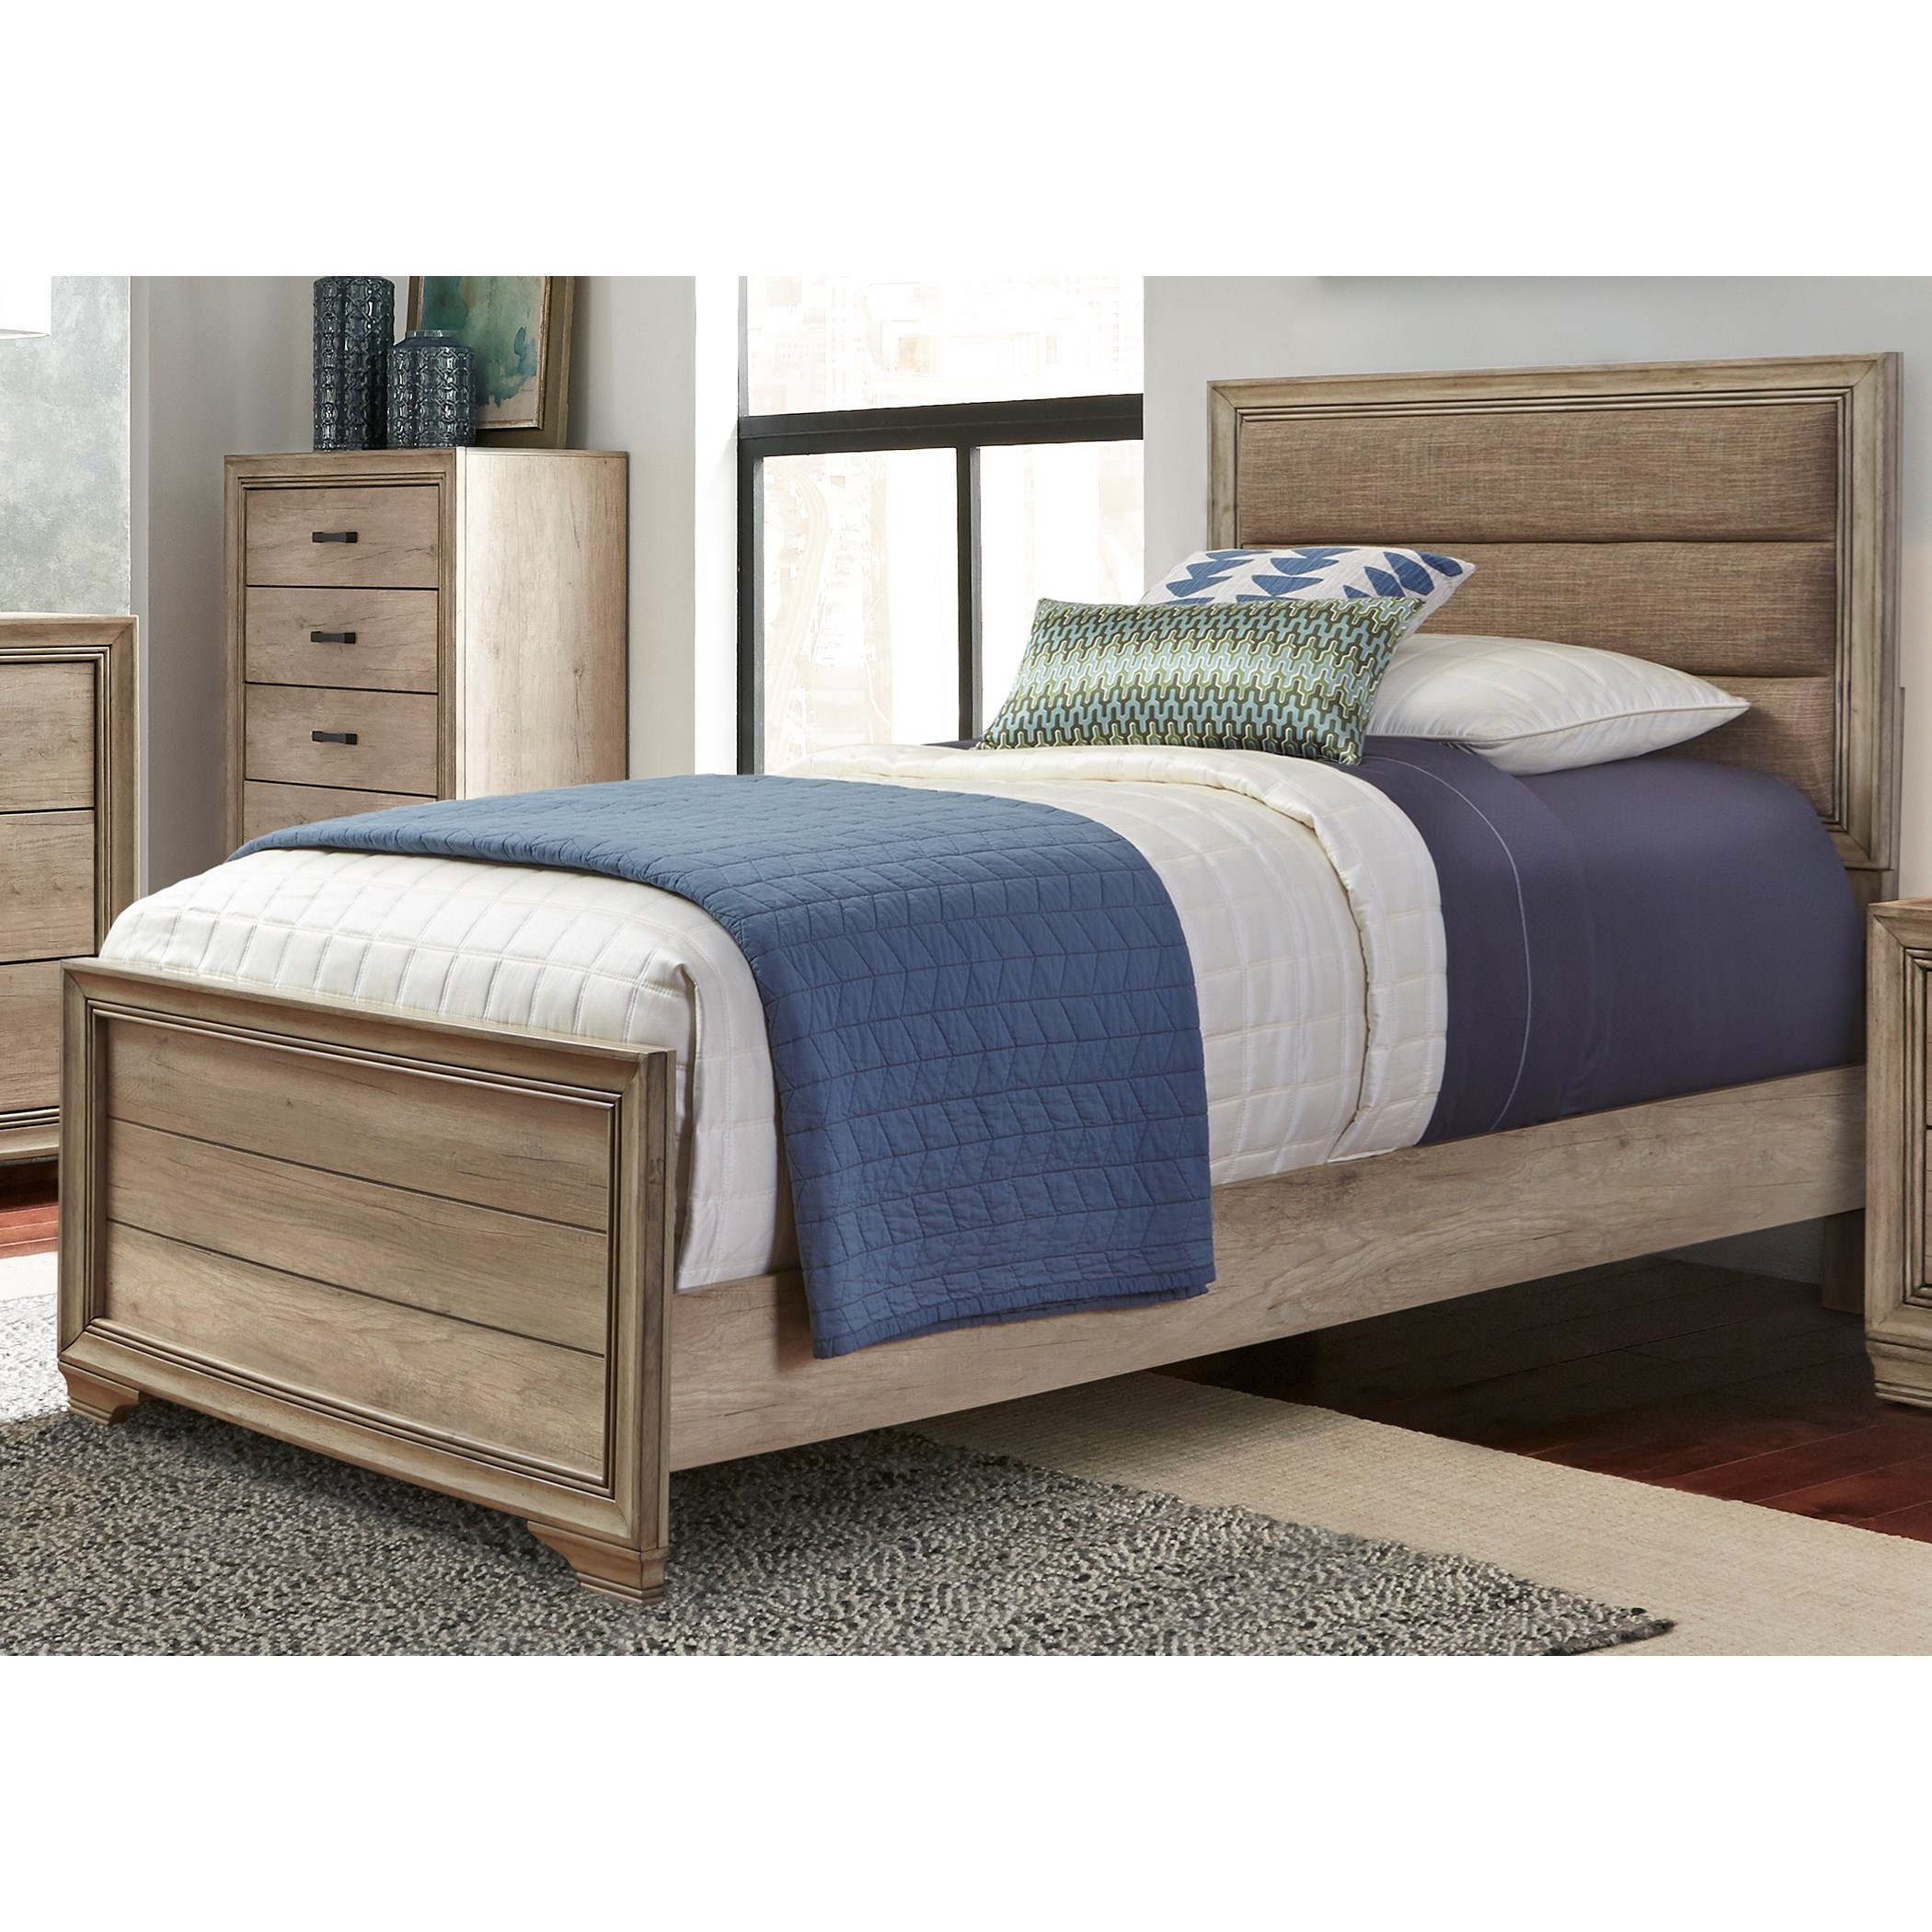 Sun Valley Twin Upholstered Panel Bed  by Freedom Furniture at Ruby Gordon Home